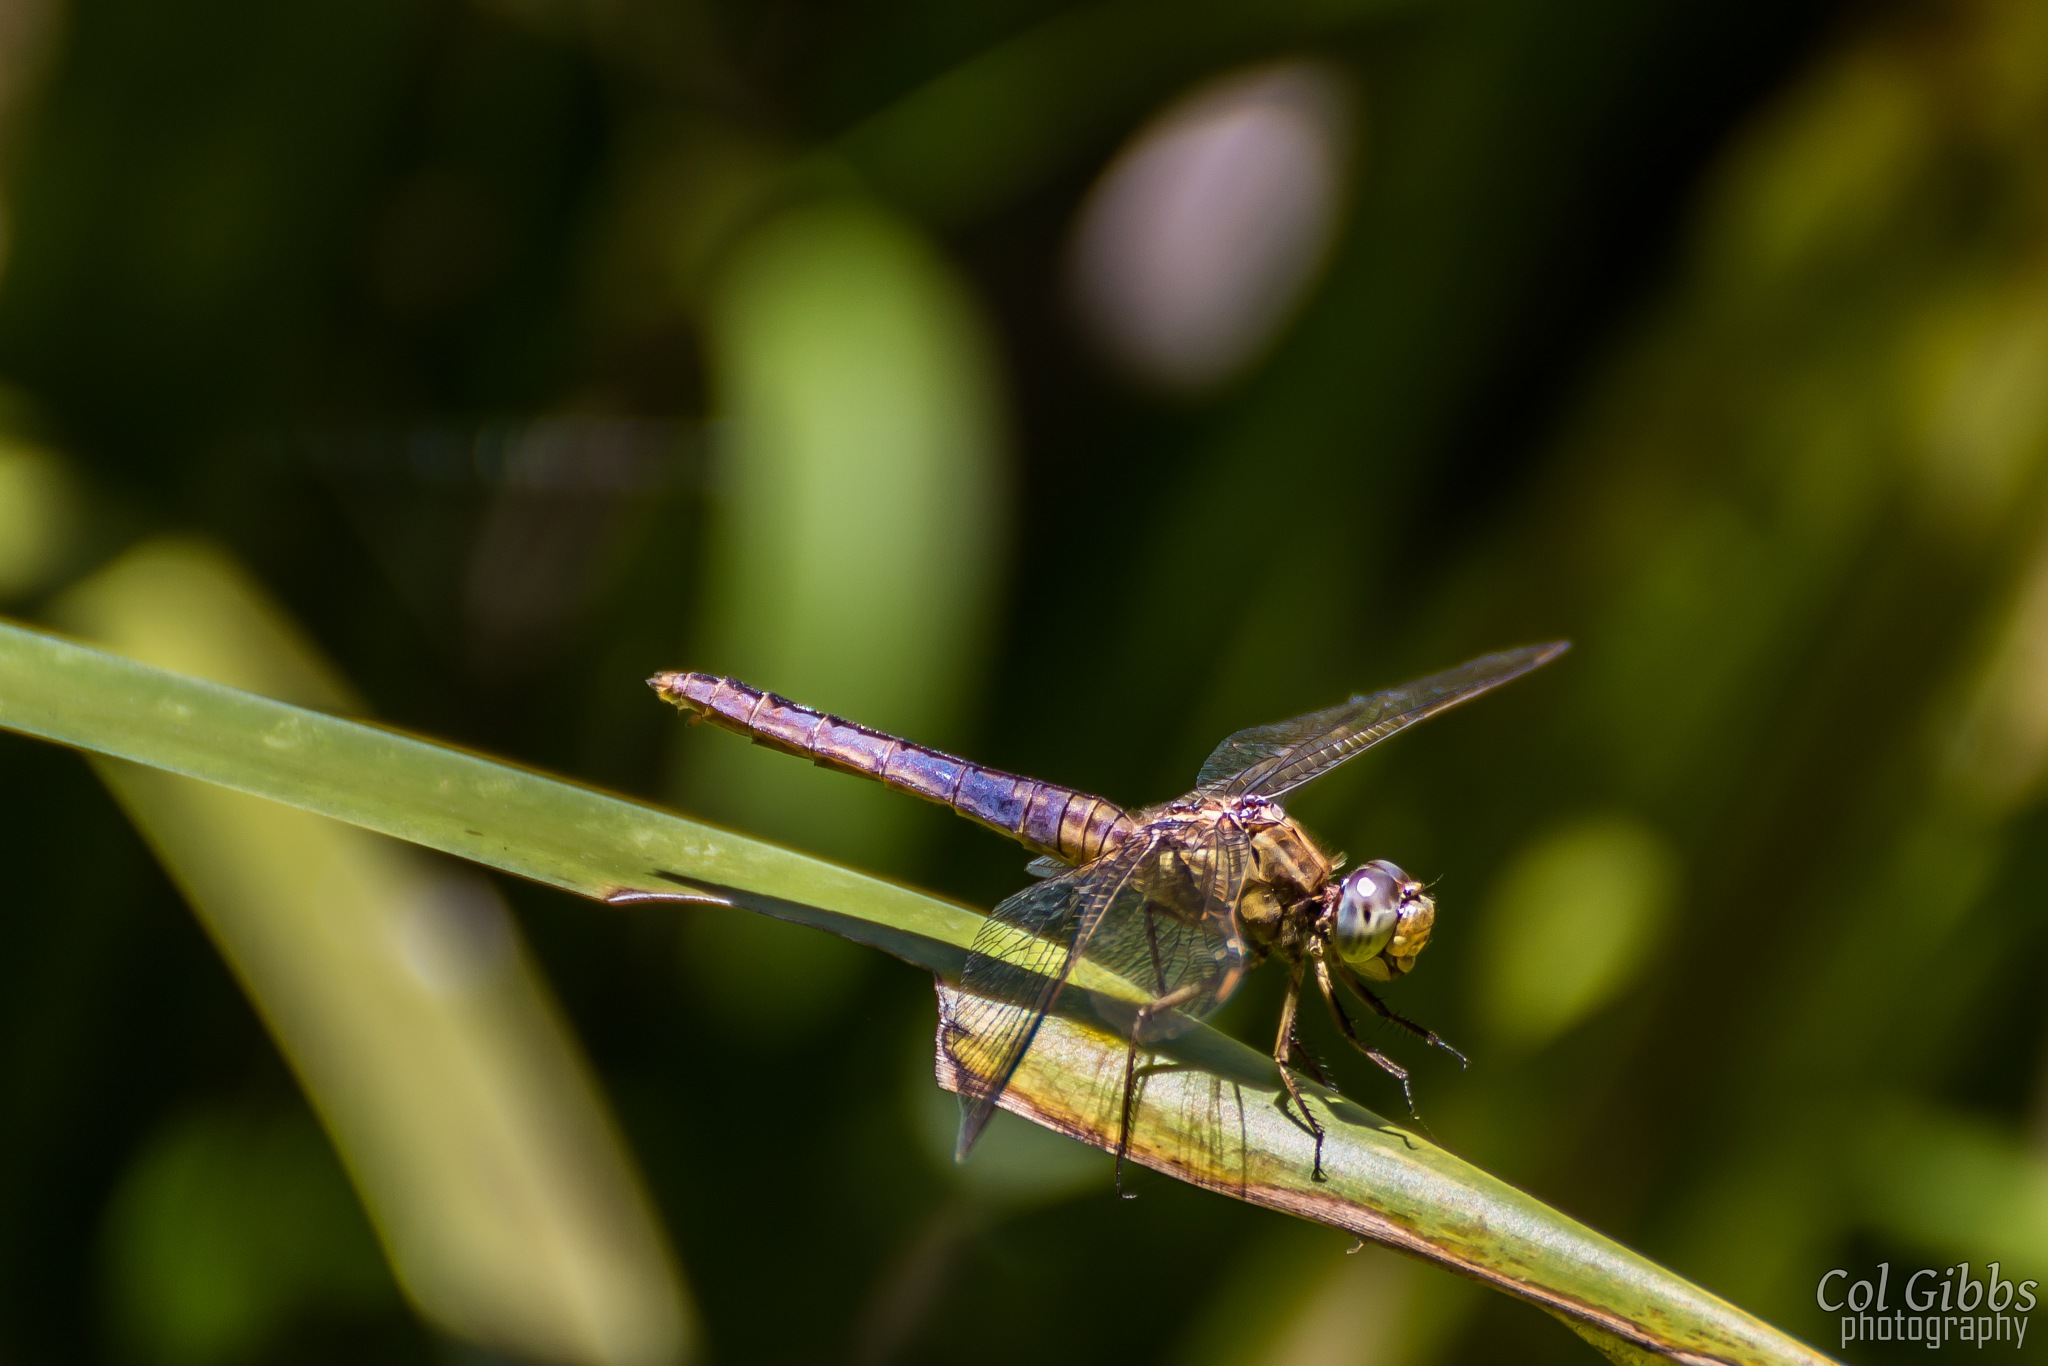 Dragonfly by Col Gibbs Photography